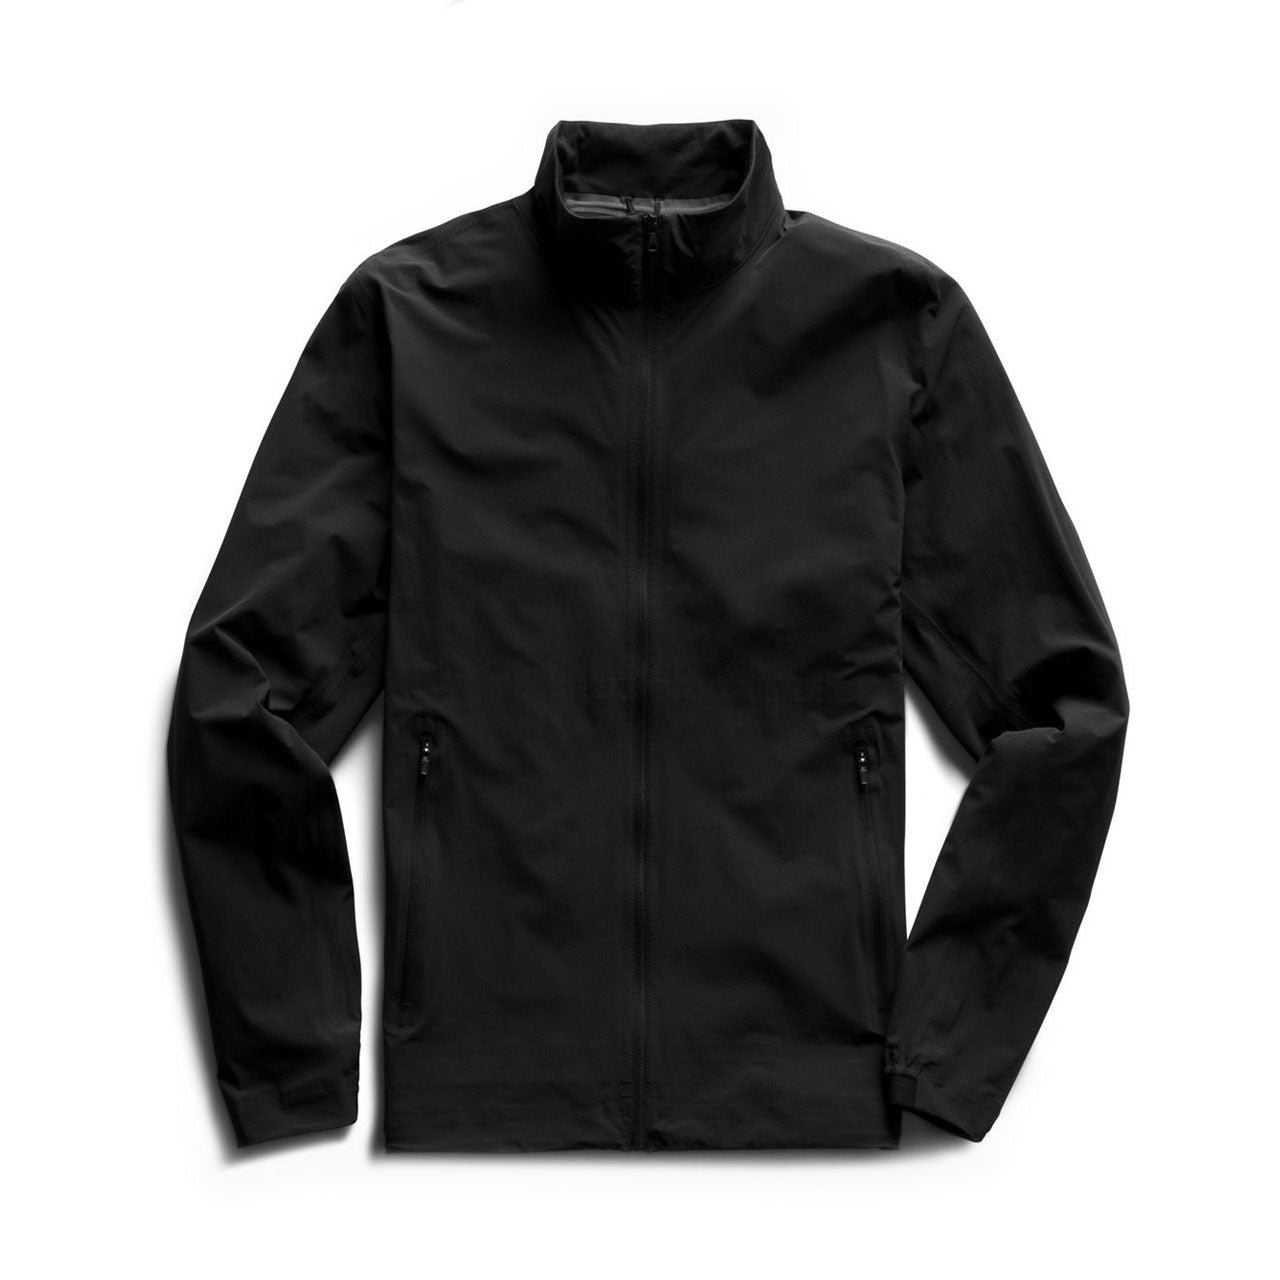 Reigning Champ Team Jacket